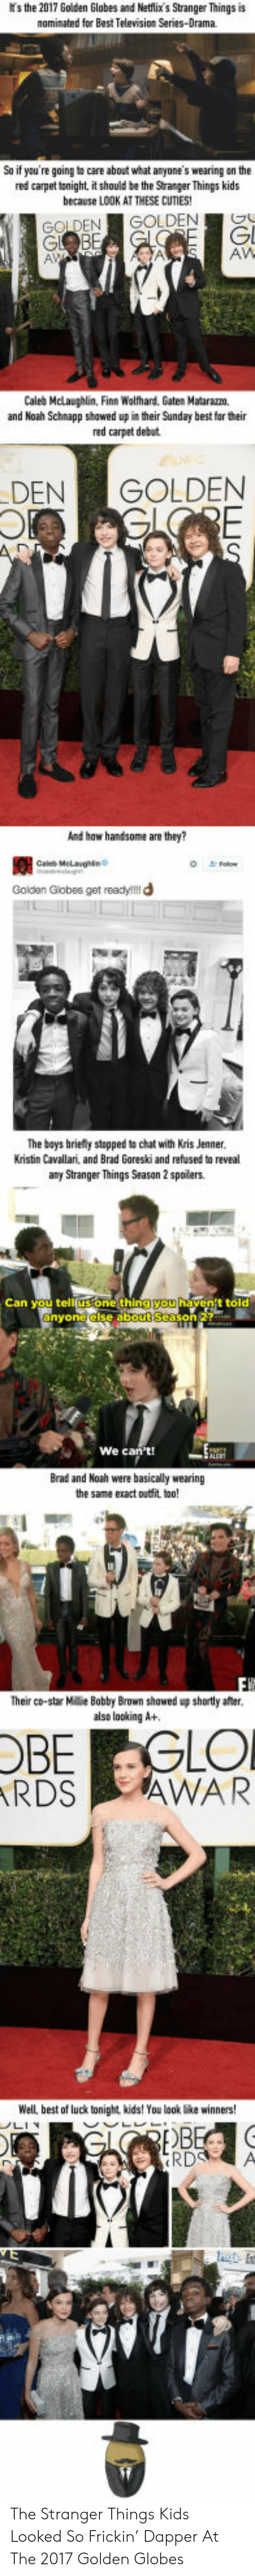 Finn, Golden Globes, and Kris Jenner: ts the 2017 Golden Globes and Netflix's Stranger Things is  nominated for Best Television Series-Drama  So if you're going to care about what anyone's wearing on the  red carpet tonight, it should be the Stranger Things kids  because LOOK AT THESE CUTIES!  GOLDEN GOLDENO  Gl  AW  Caleb Mclaughlin, Finn Wolfhard, Gaten Matarazm,  and Noah Schnapp shawed up in their Sunday best for their  red carpet debut  DENGOLDEN  And haw handsome are they?  蠶  Goldan Giobes get readyl!!d  Caleb Melaughin  The bays briely stopped to chat with Kris Jenner  Kristin Cavallari, and Brad Goreski and refused to reveal  any Stranger Things Season 2 spoilers  one thin  t told  We c  Brad and Noah were basically wearing  the same exact outfit tao!  Their co-star Millie Babby Brown shawed up shortly afer.  also looking A+  OBE GLO  RDS AWAR  Well, best of luck tonight, kids! You look lbke winners  ให้  RD A The Stranger Things Kids Looked So Frickin' Dapper At The 2017 Golden Globes